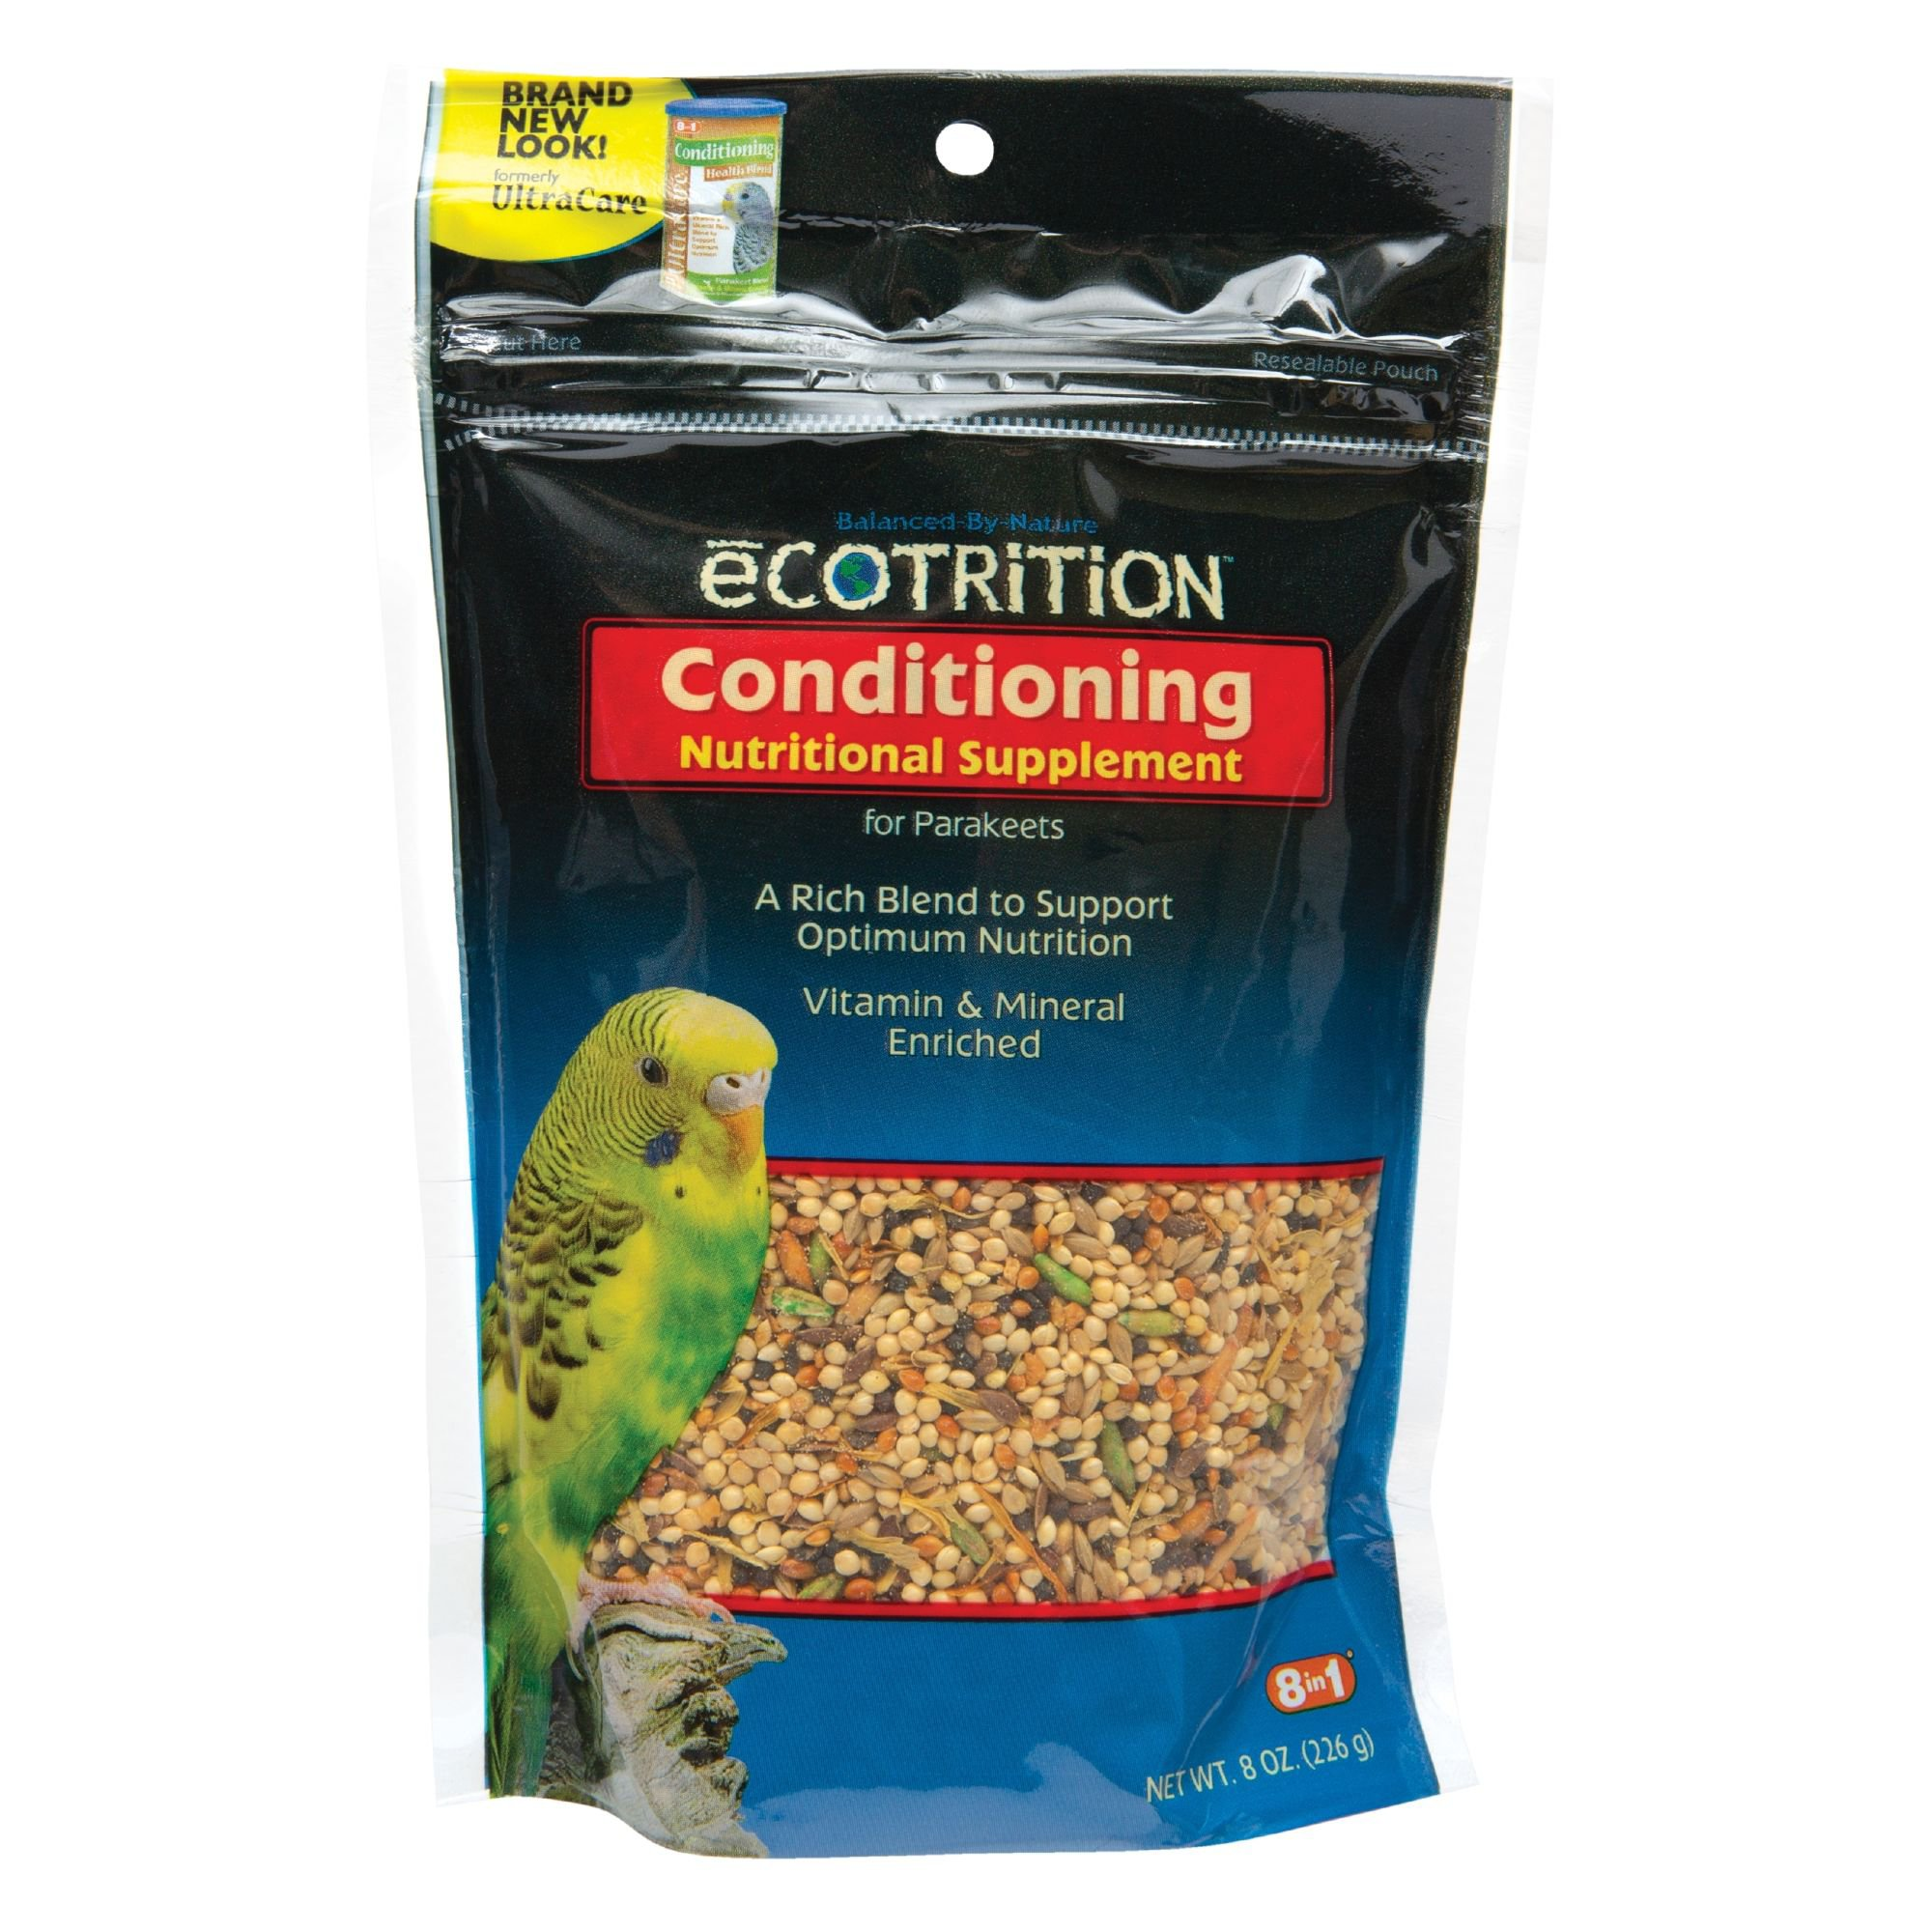 eCOTRITION Conditioning Health Blend for Parakeets